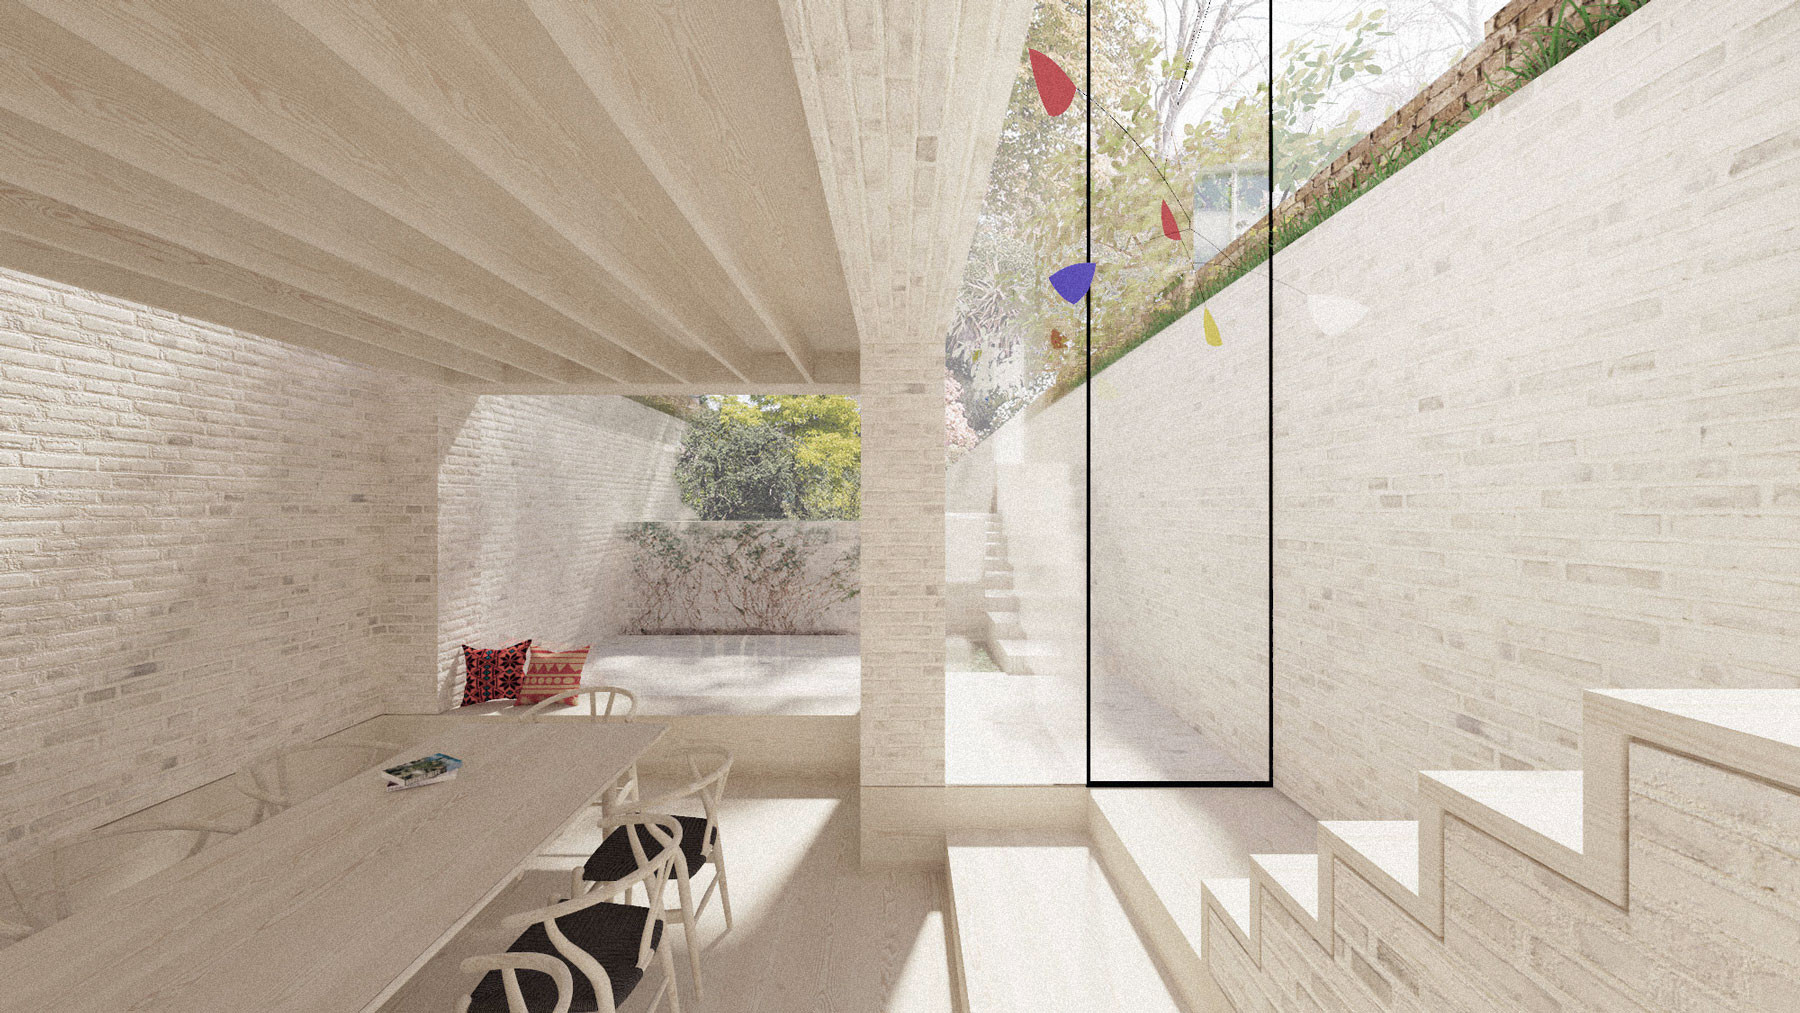 Hackney house extension architect